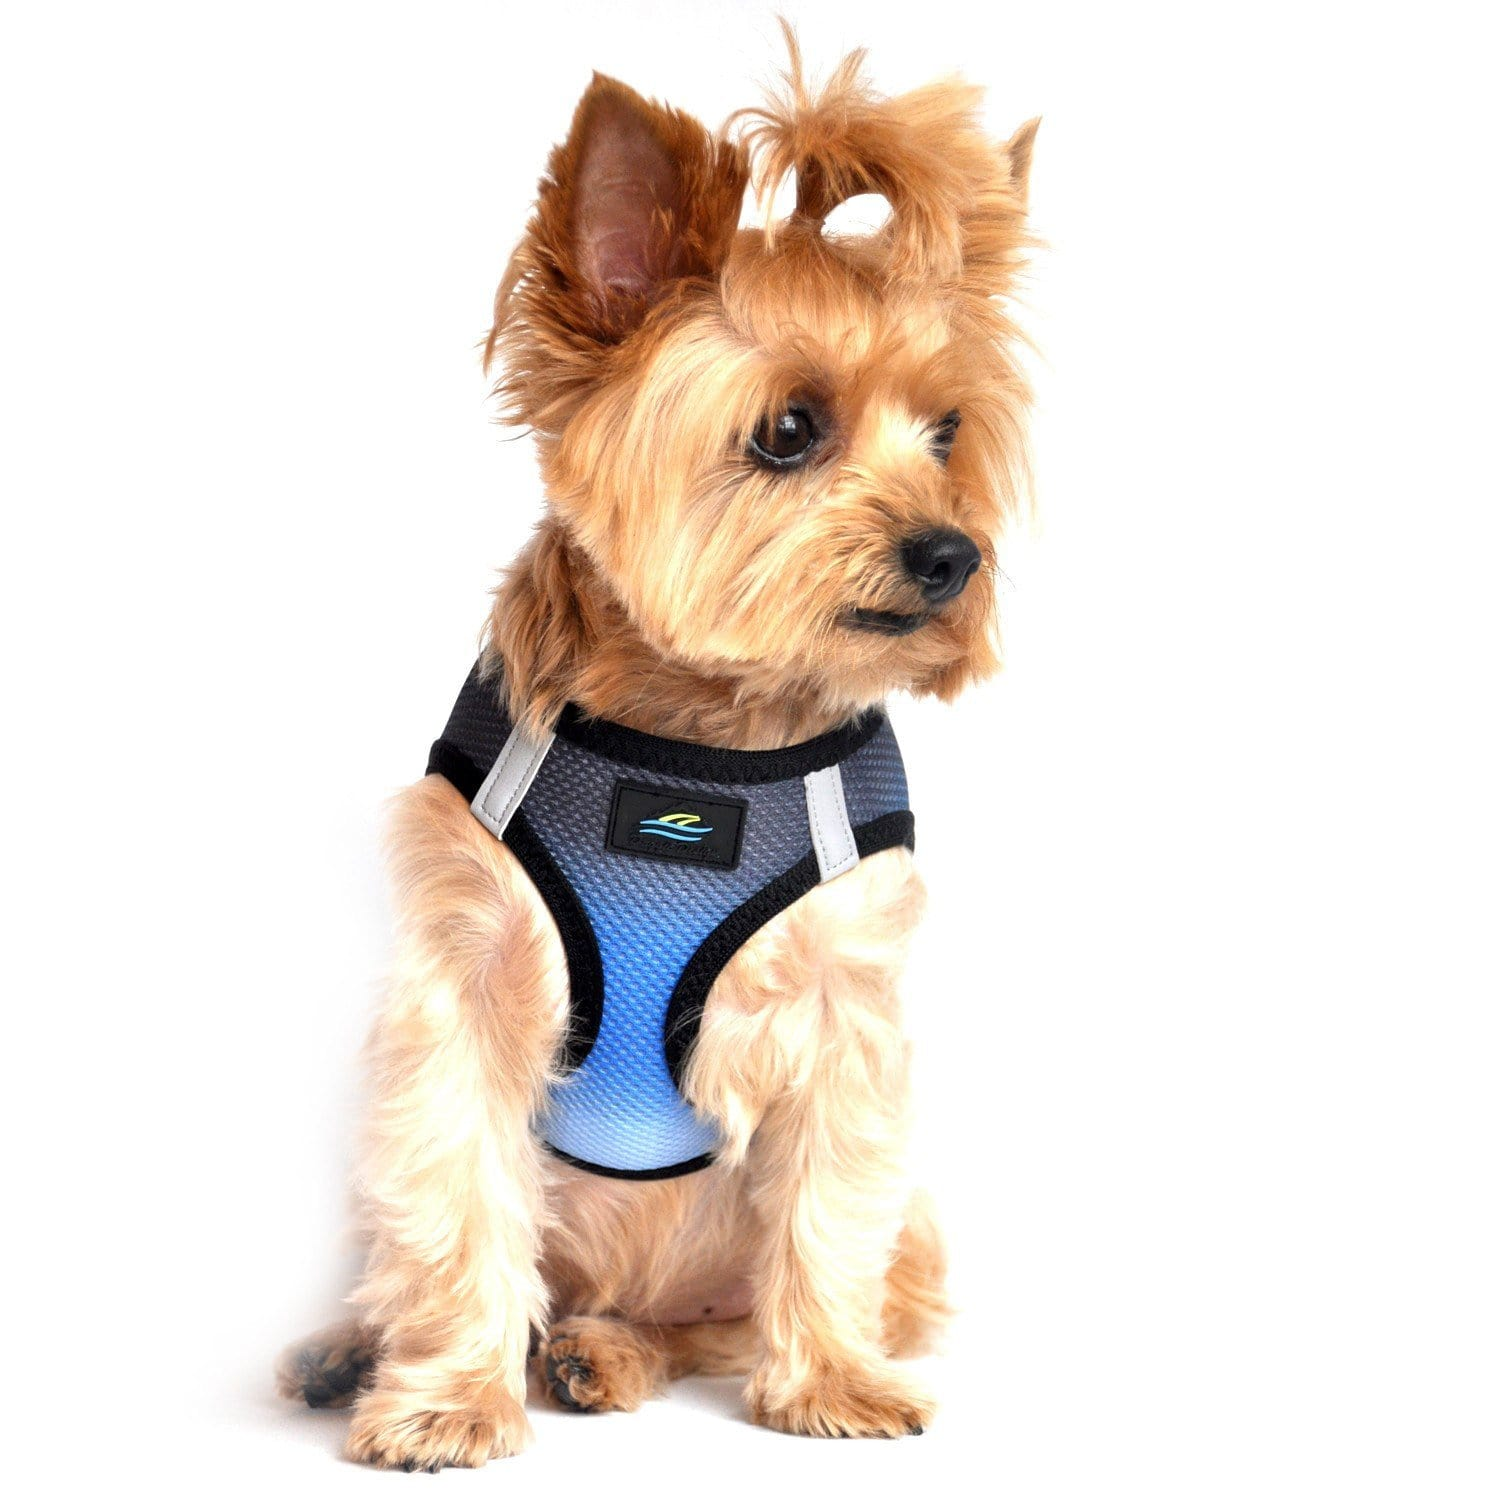 Step-in dog harness - Midnight Sky